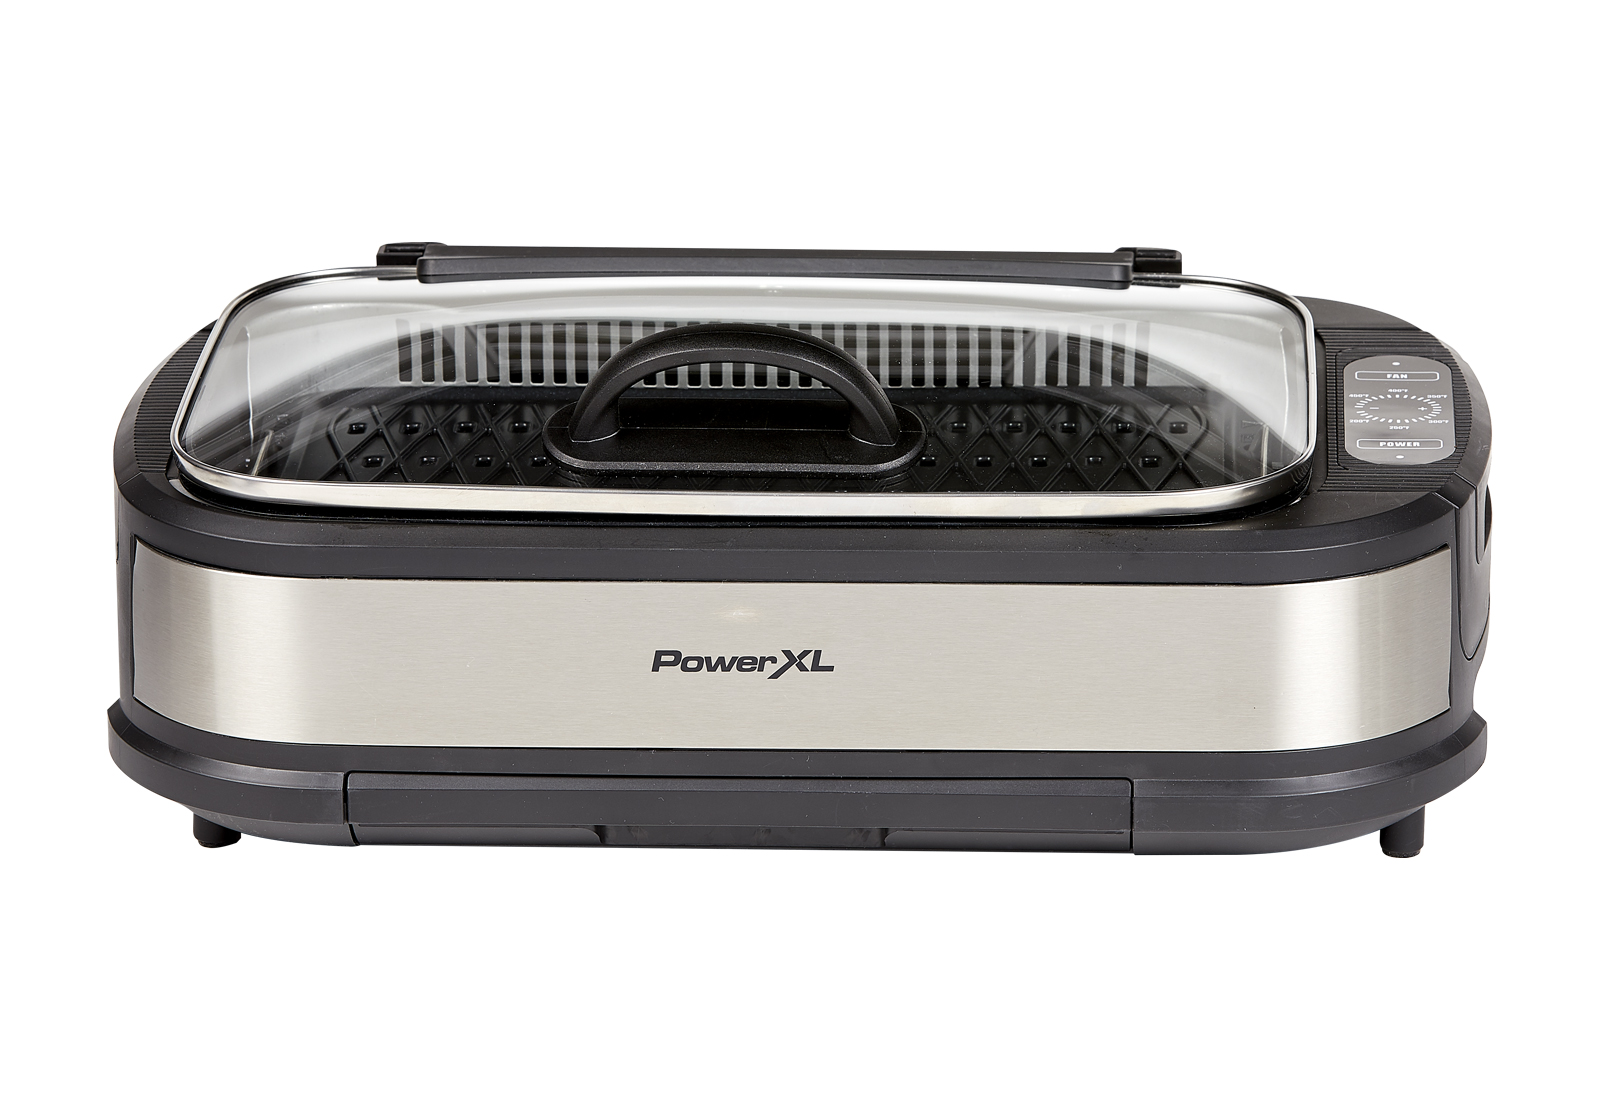 PowerXL Smokeless Grill Product Image